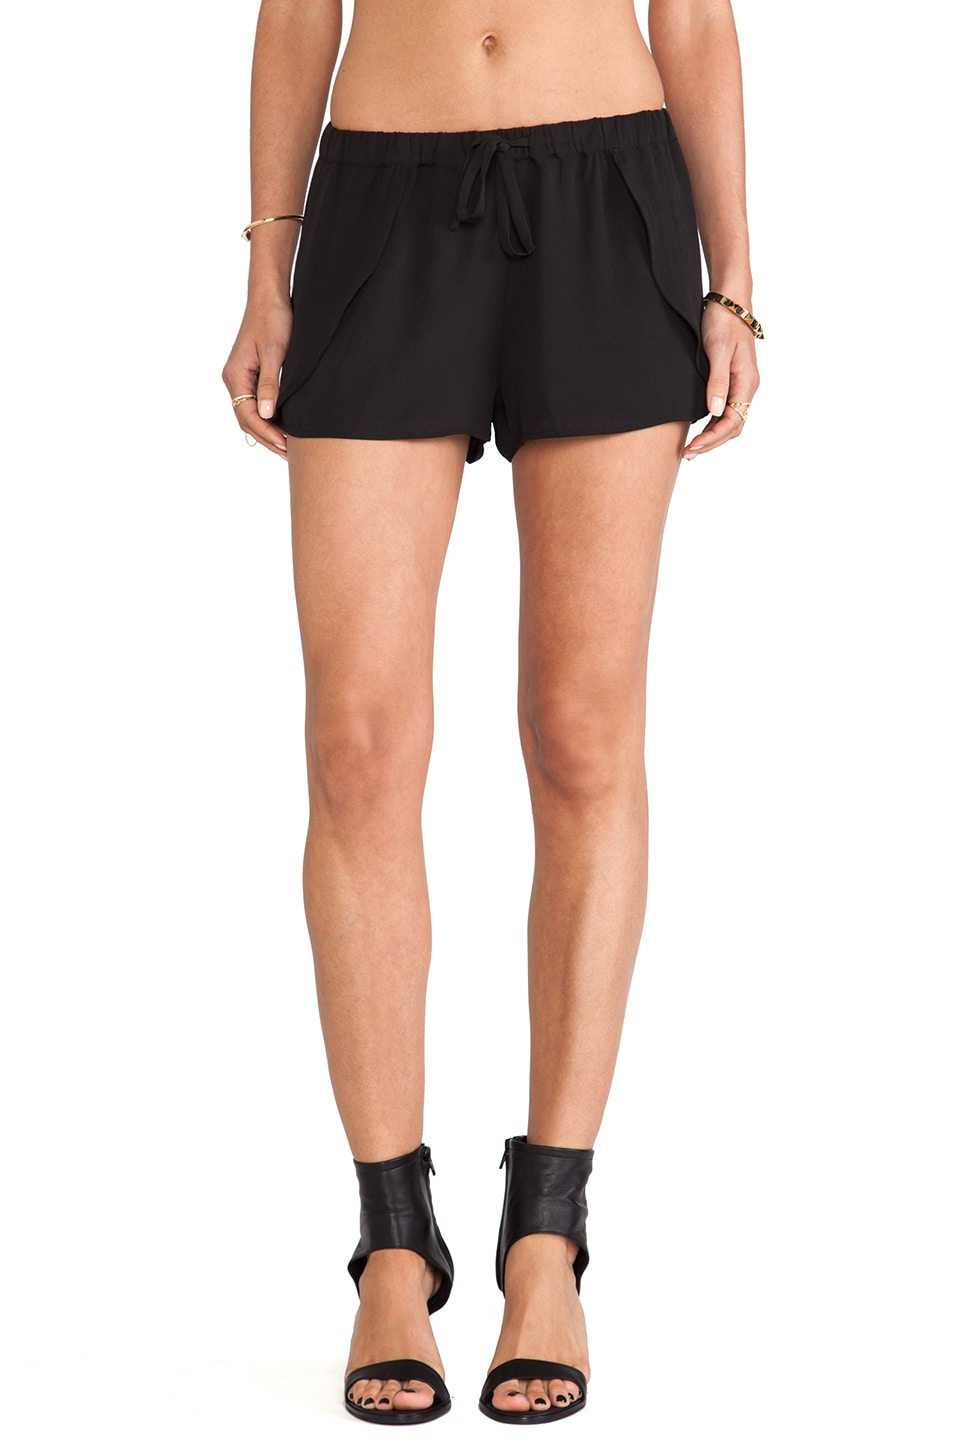 Ladakh Crepe Petal Short in Black